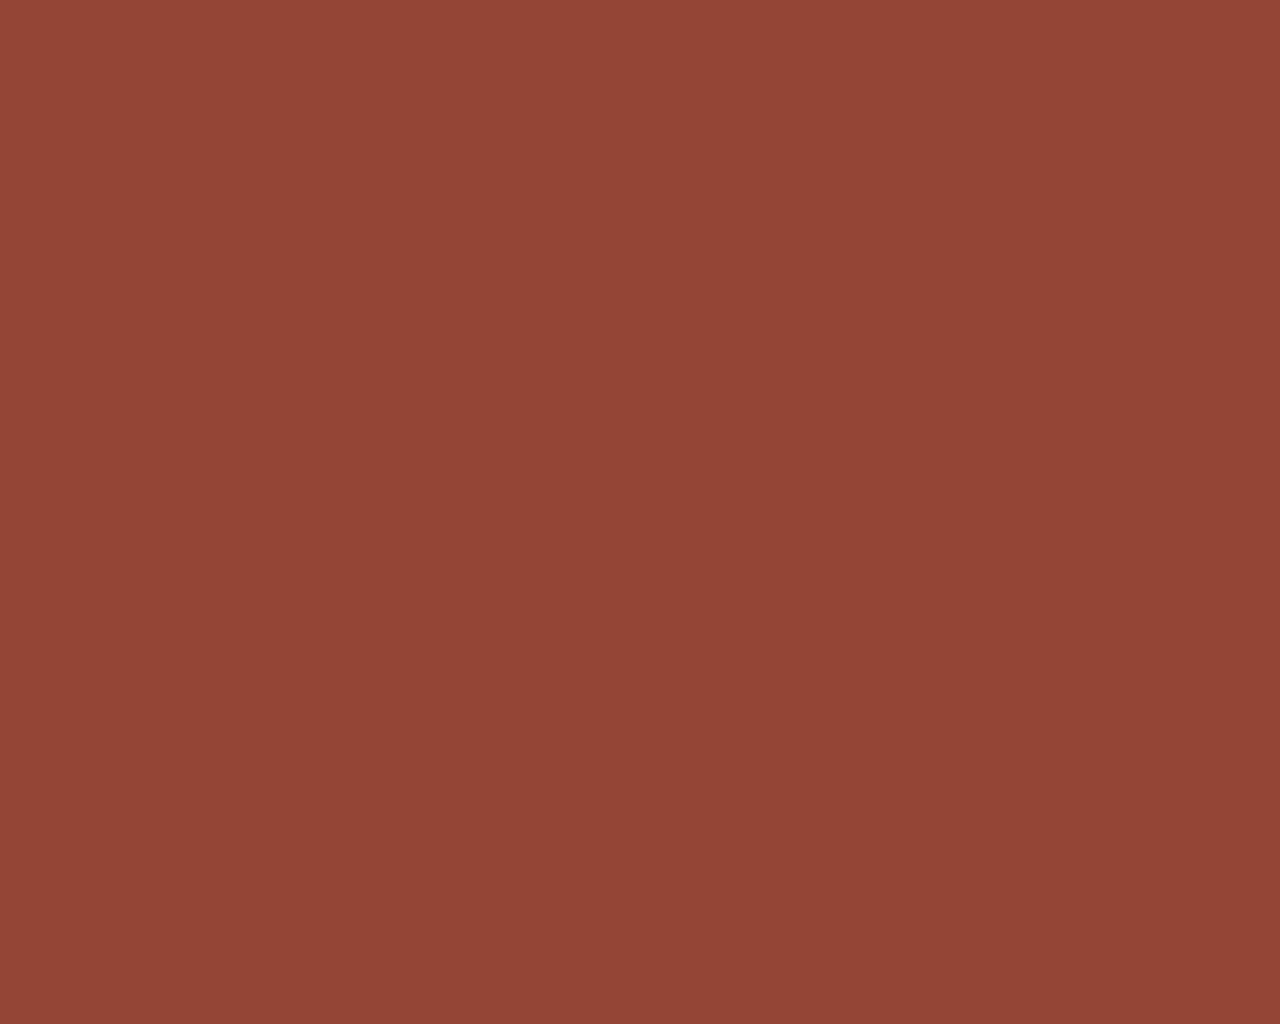 1280x1024 Chestnut Solid Color Background